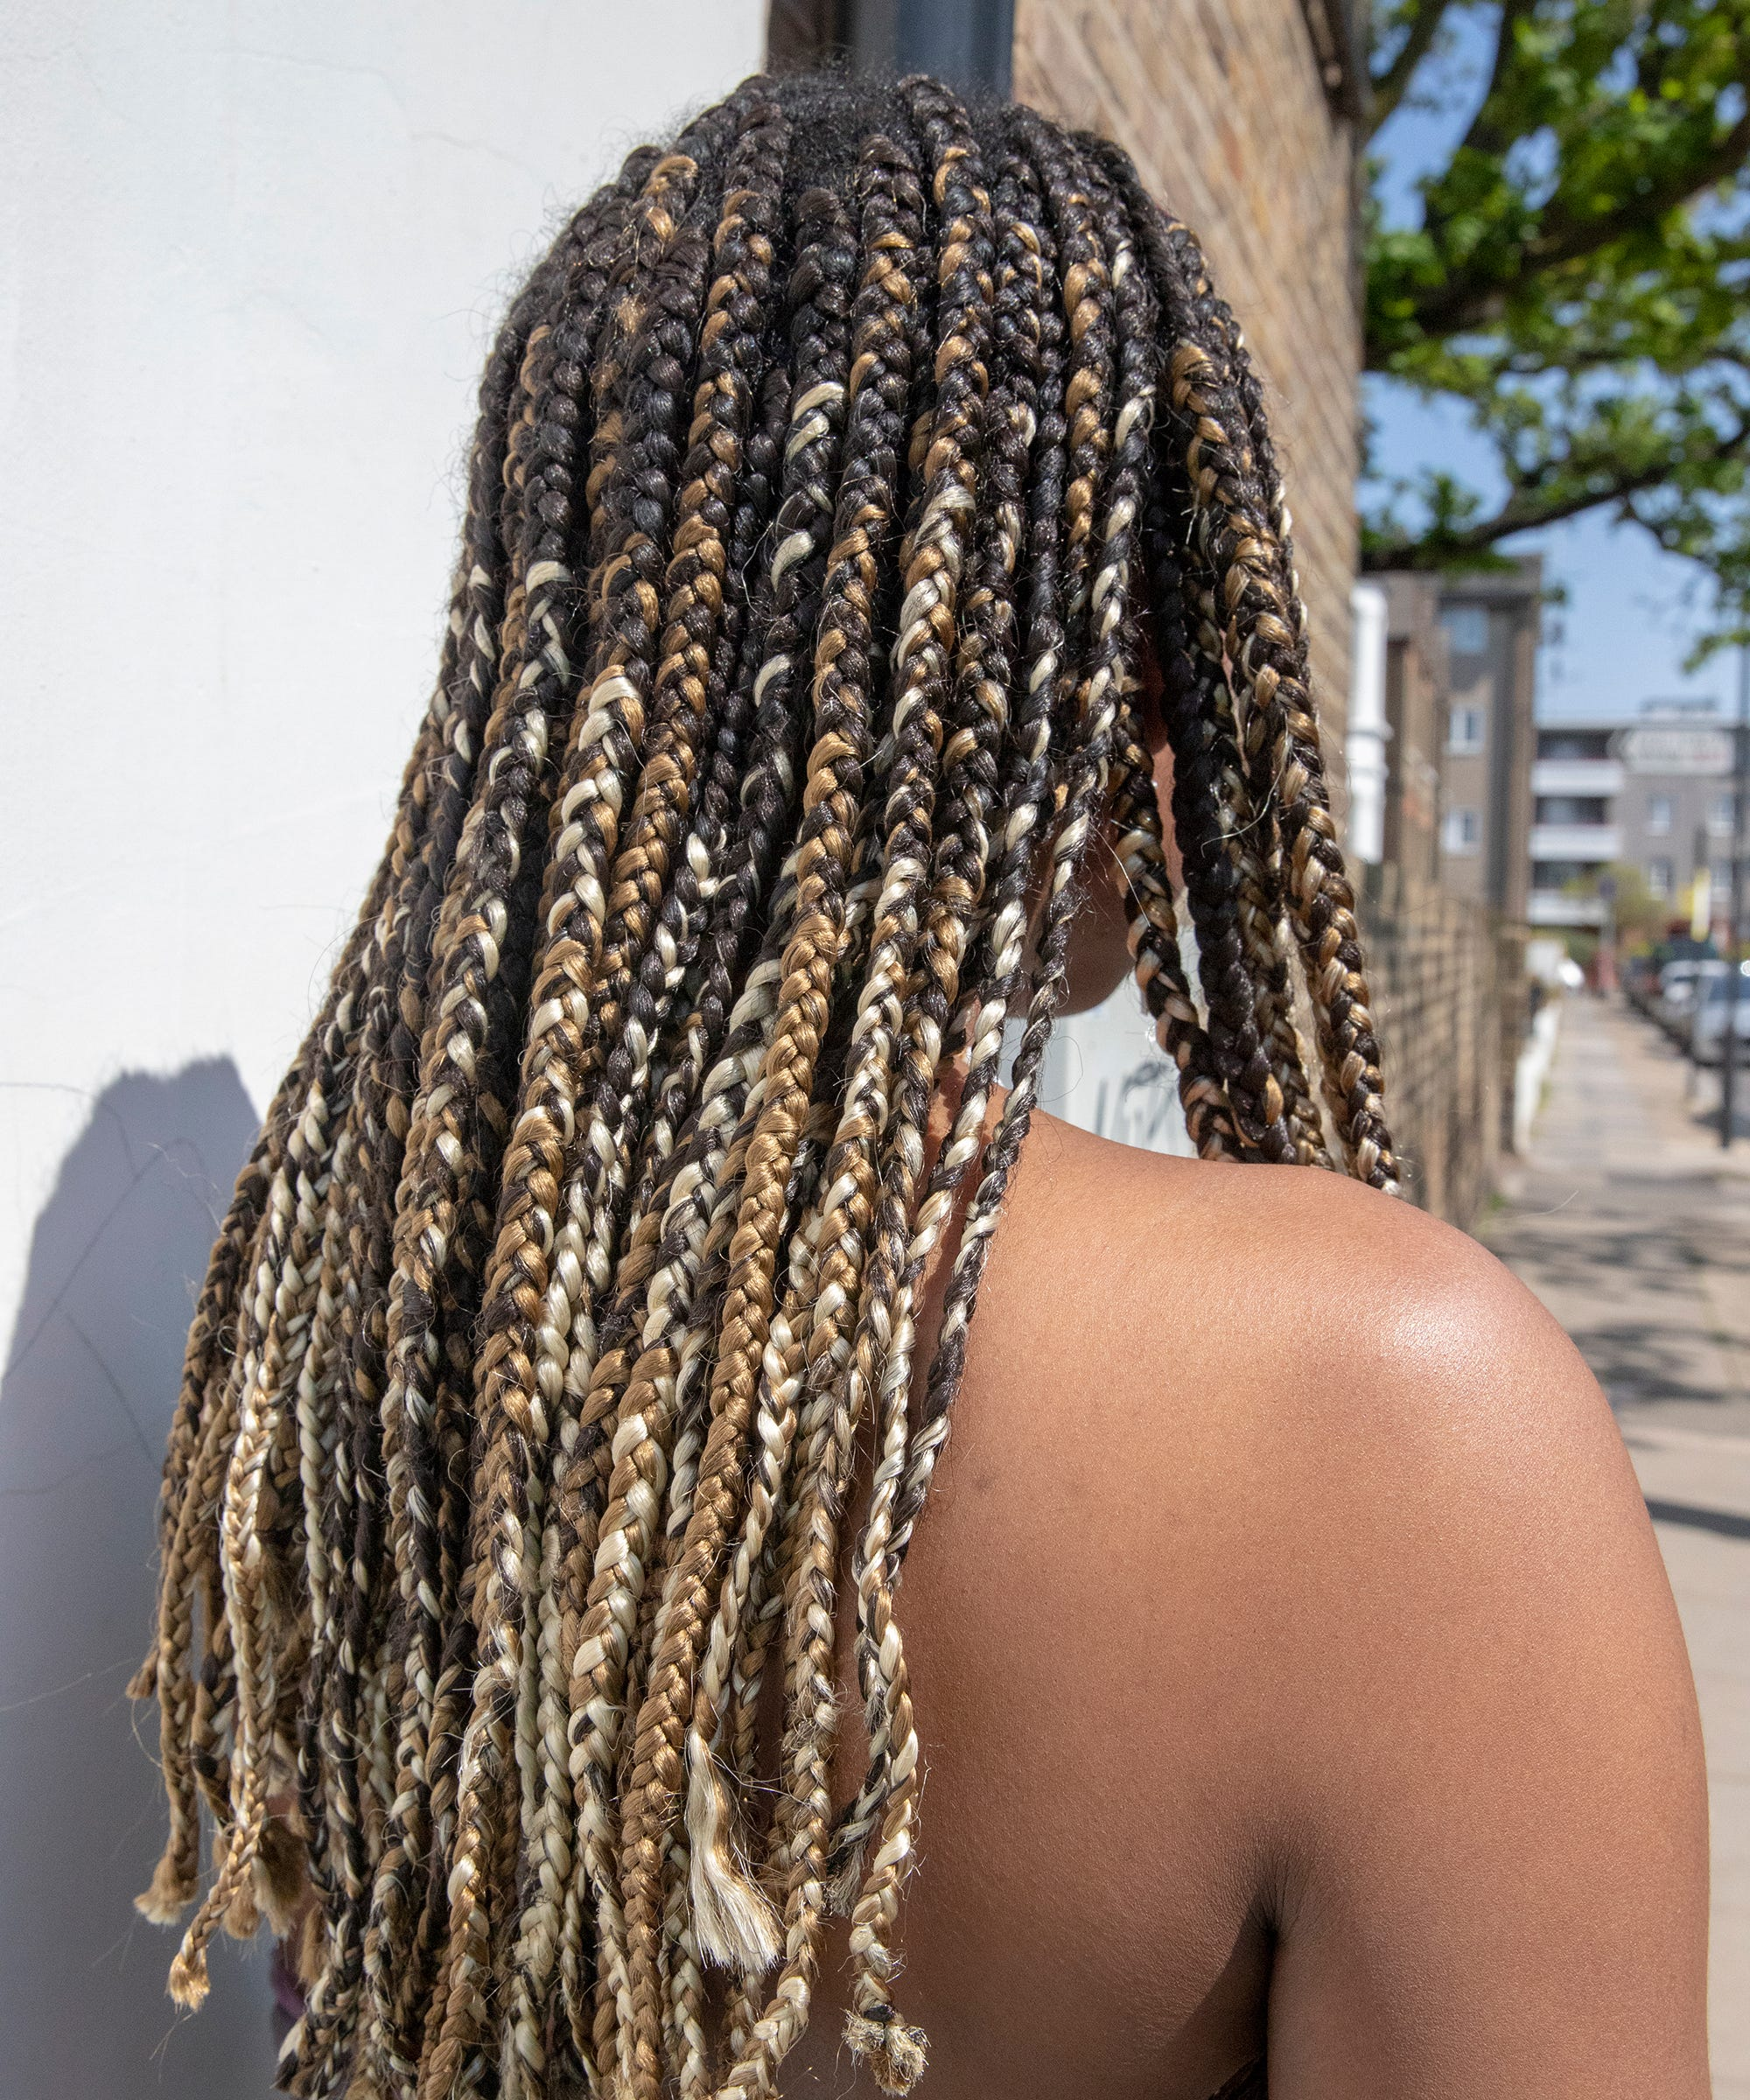 Hitting The Pool This Weekend? Here's How To Stop Your Braids From Getting Frizzy